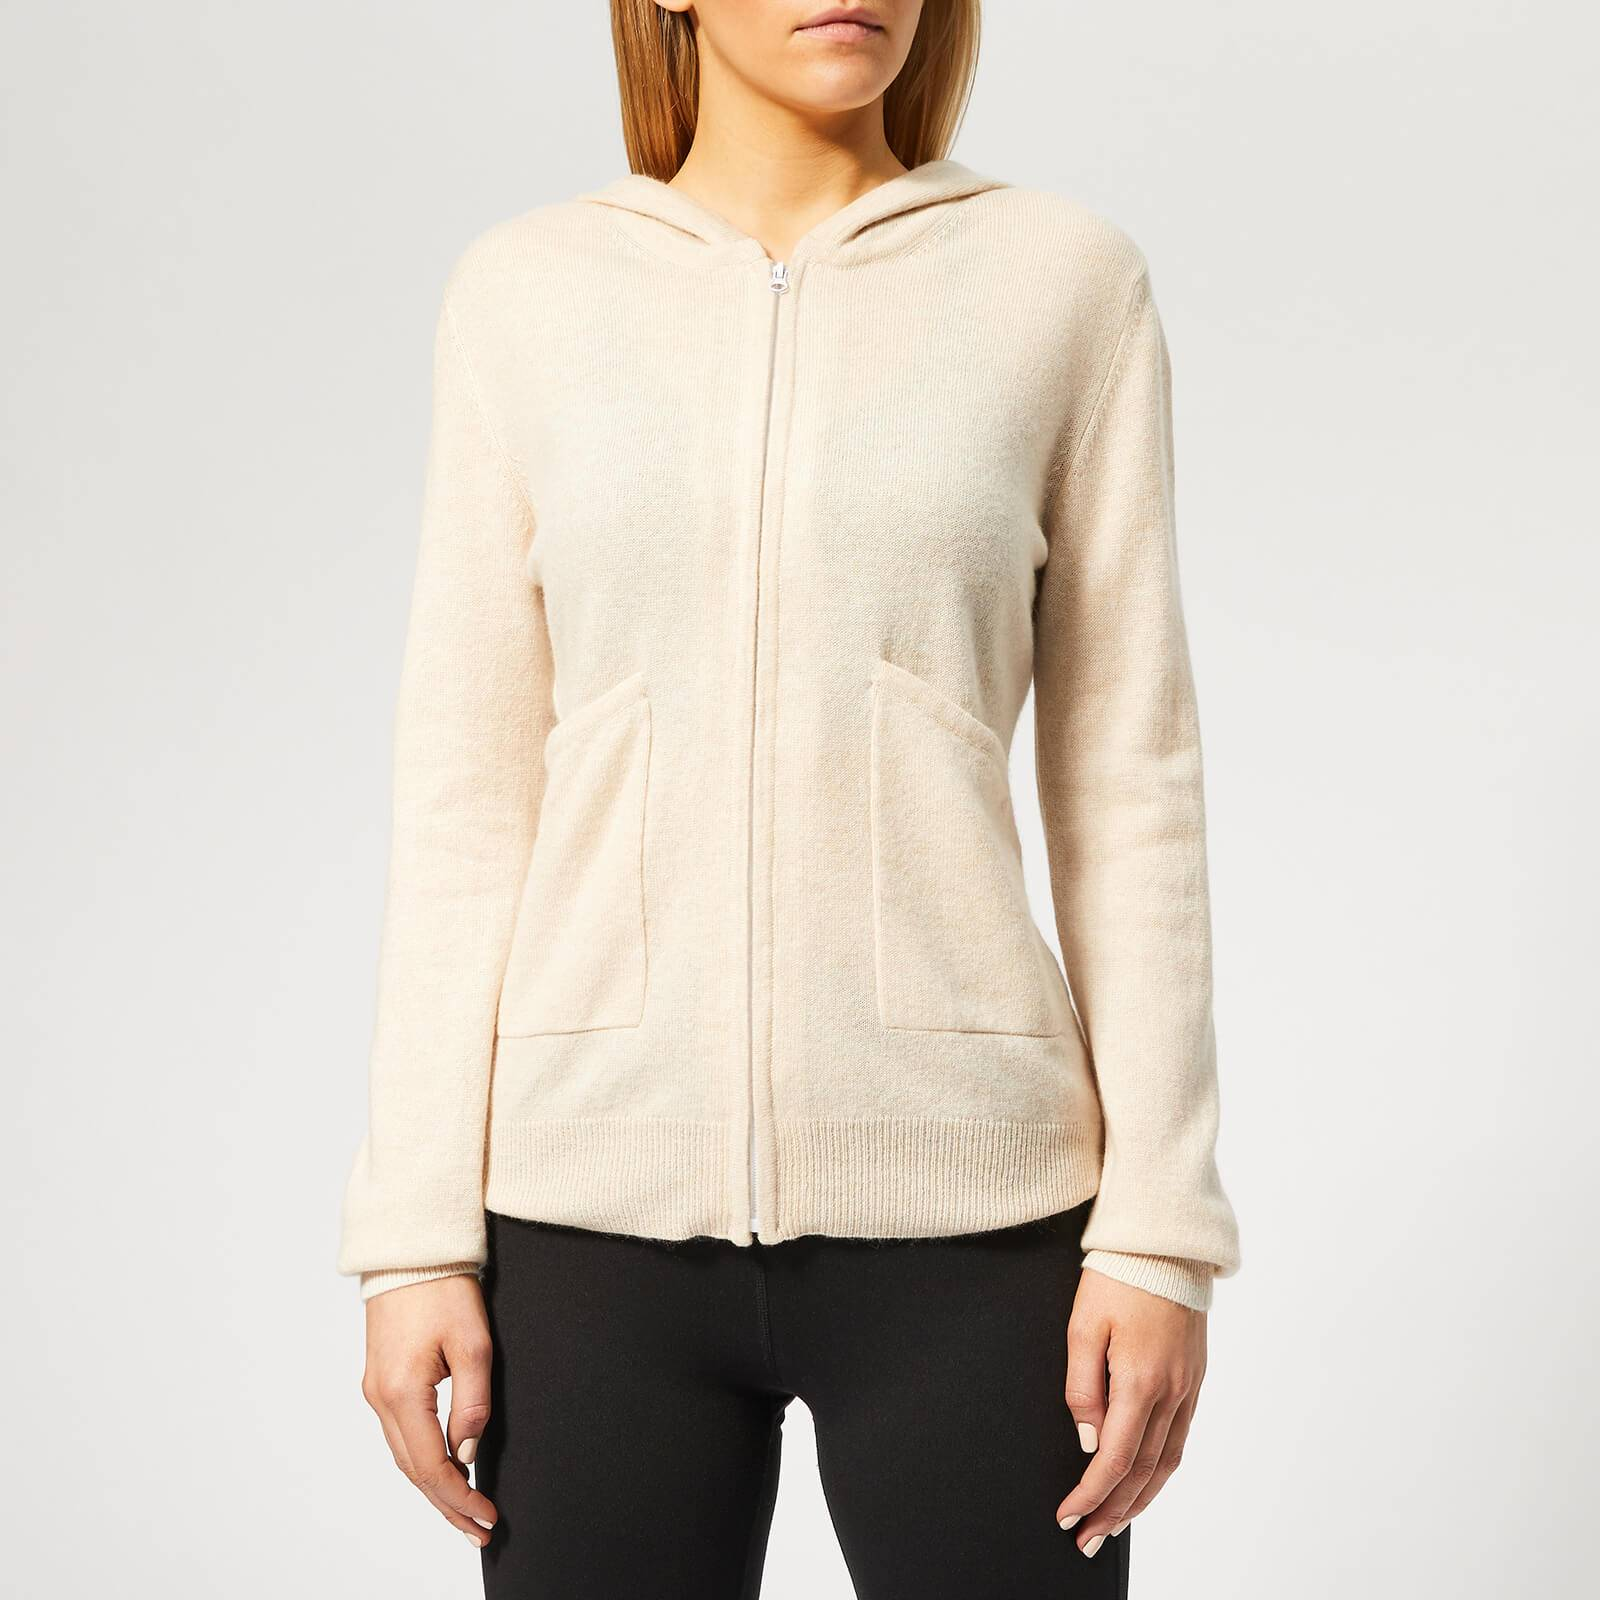 Pepper & Mayne Women's Exclusive Cashmere Apres Sport Hoody - Creme Brulee - XS - Cream